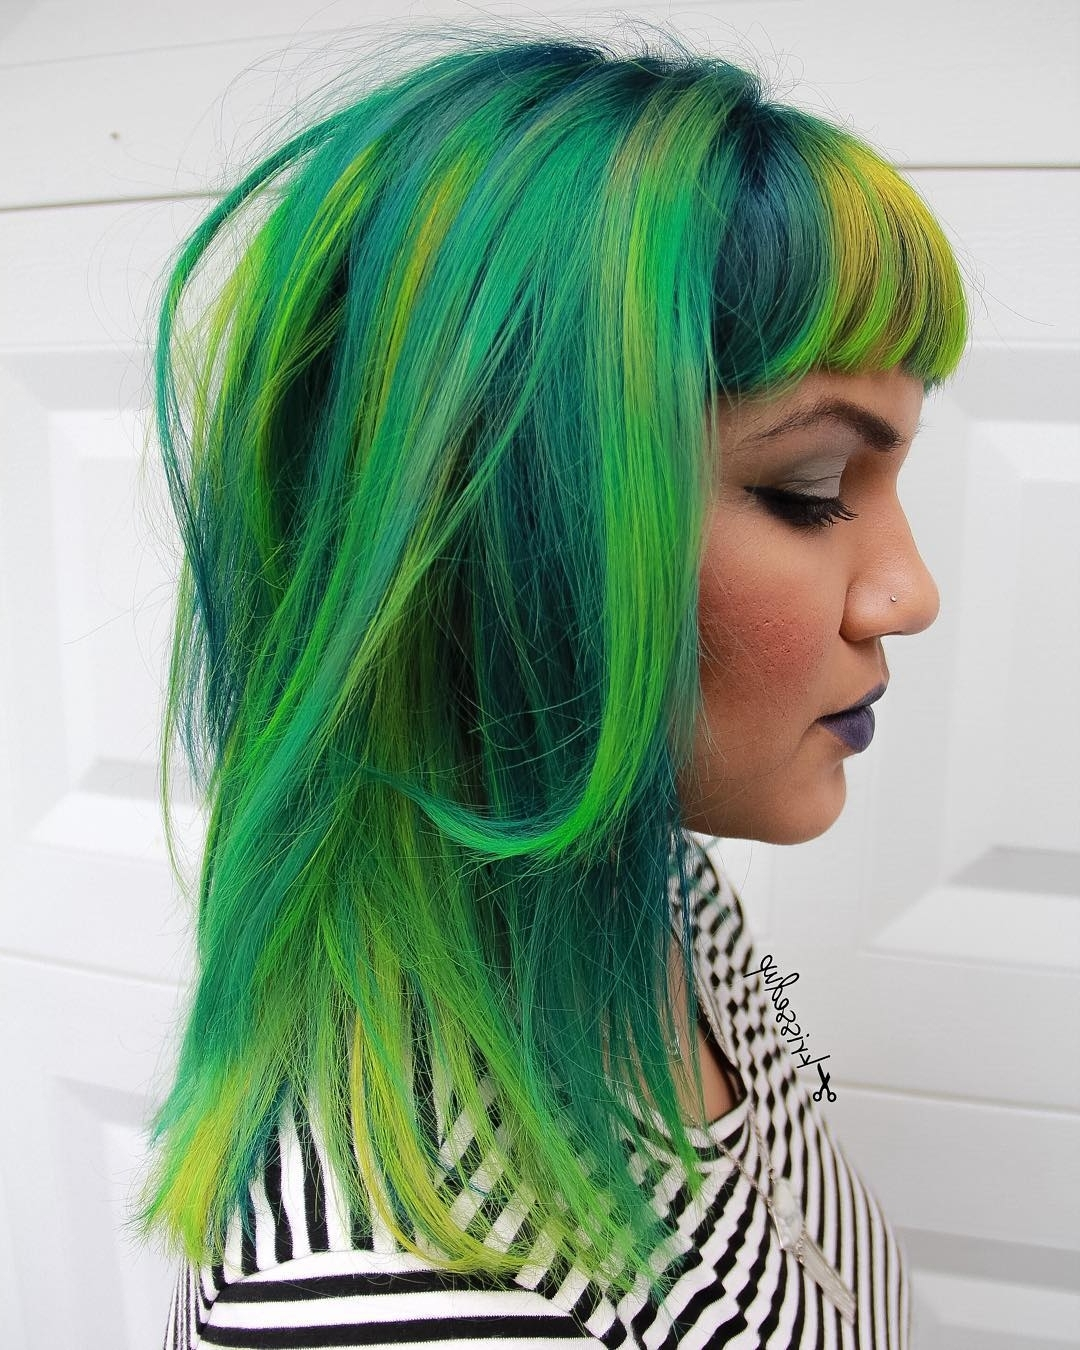 20 Ways To Rock Green Hair Pertaining To Fashionable Blonde Hairstyles With Green Highlights (View 2 of 20)